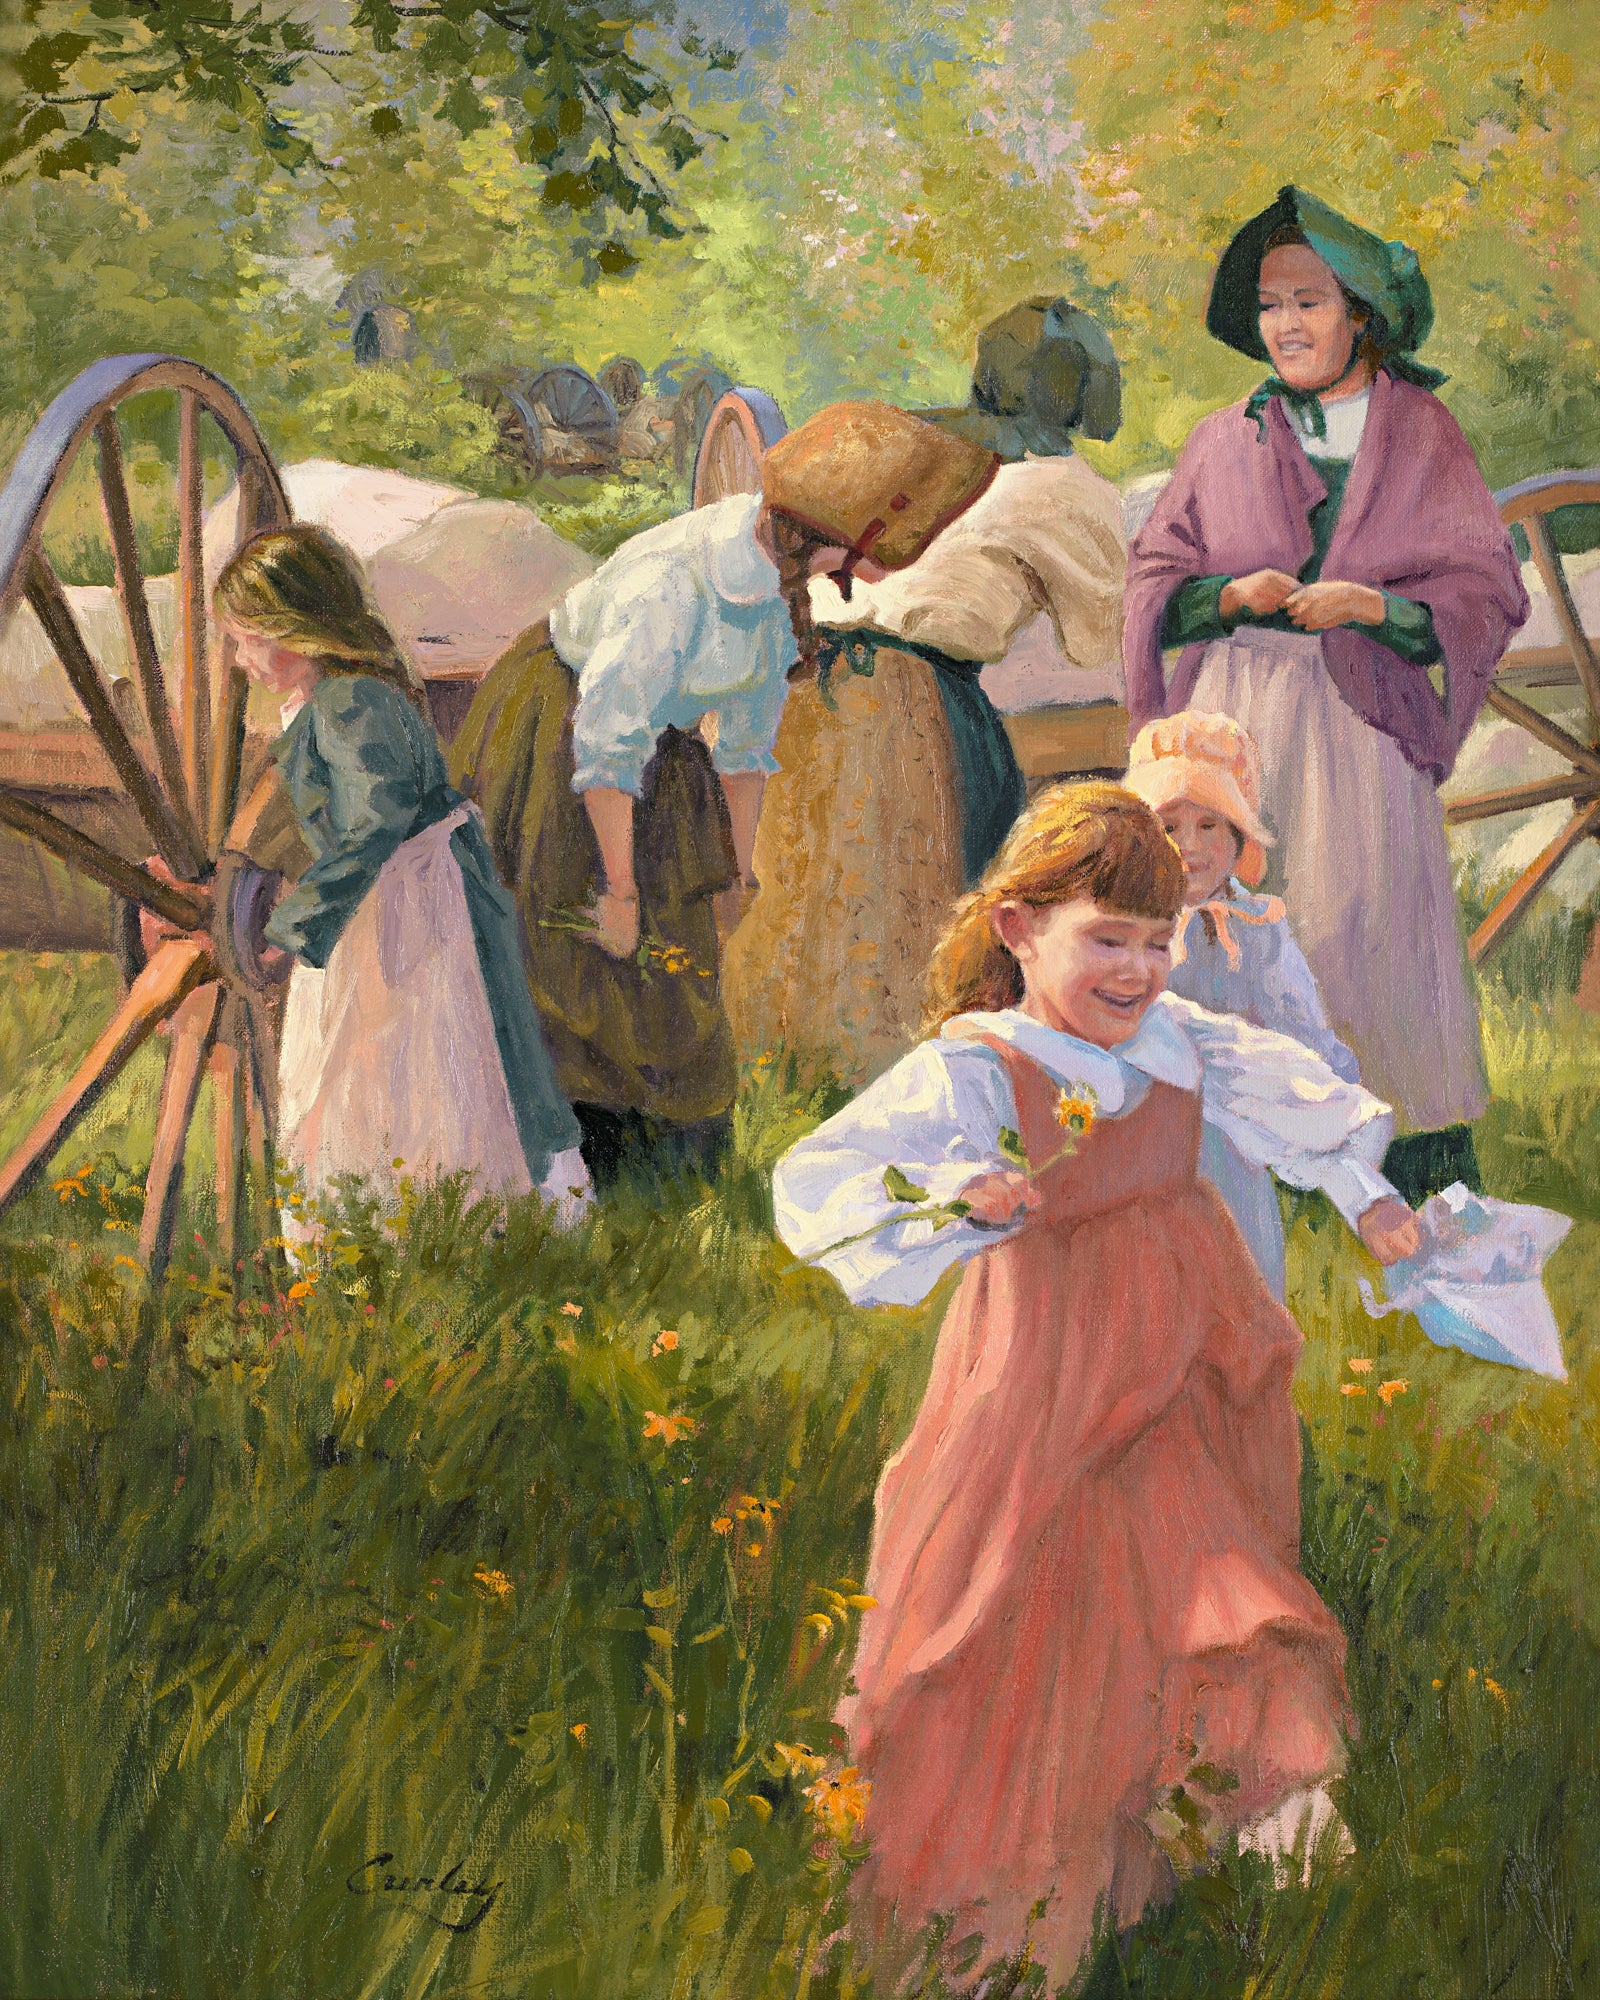 Group of women with handcarts smile while young girl picks flower.